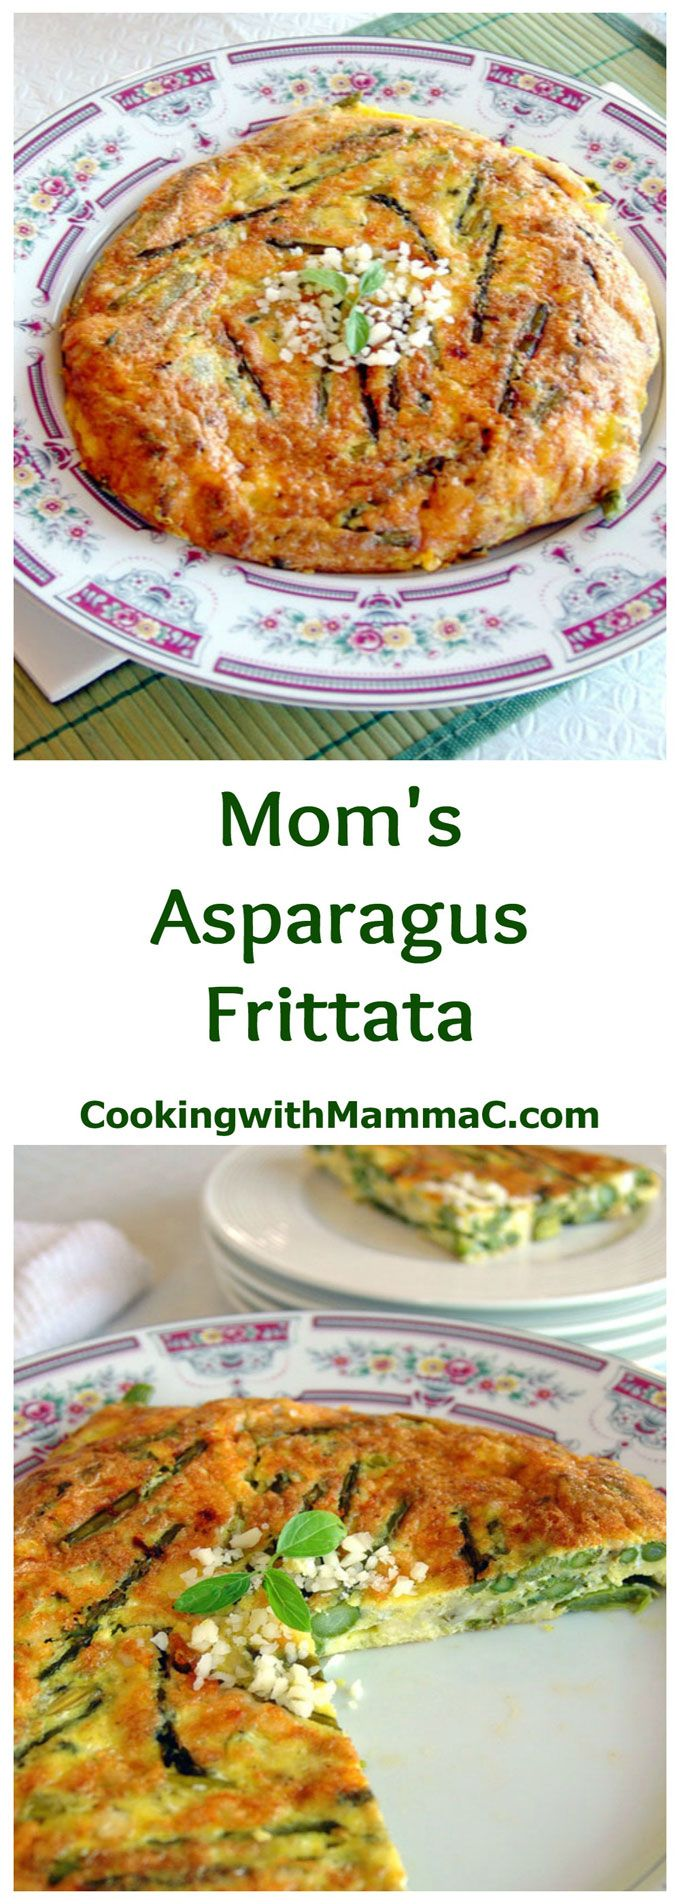 Mom's Asparagus Frittata is cooked on the stove, just like in Naples. Featuring Romano and Parmesan cheeses, eggs and garlic, this is gluten free and fantastic!